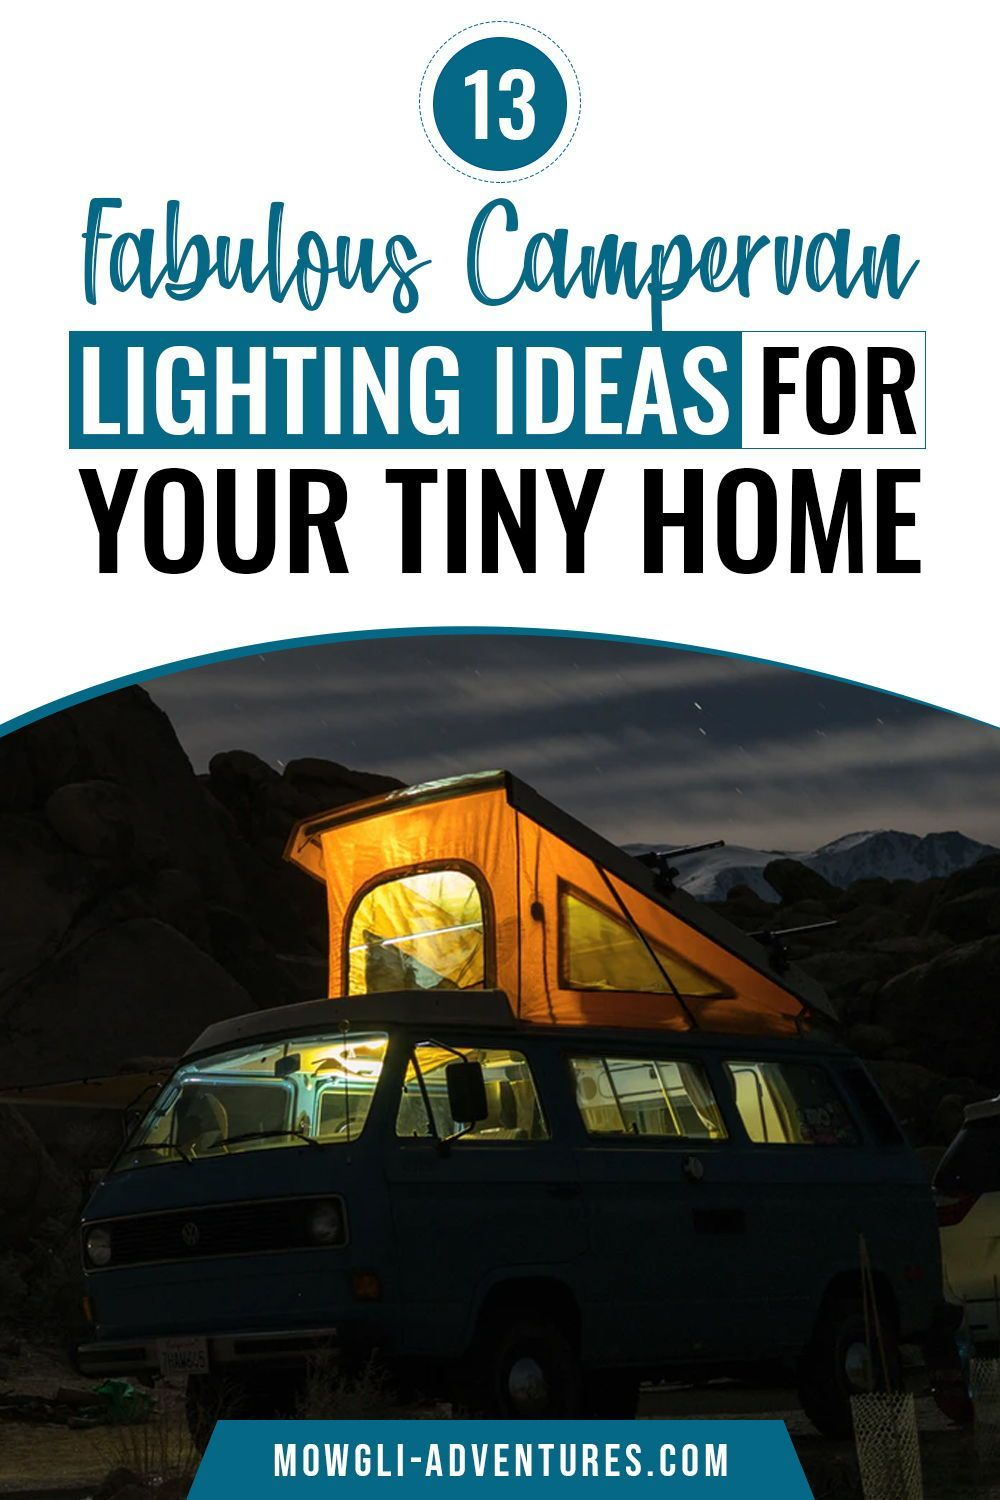 The Best Camper Van Lighting Ideas for your Conversion